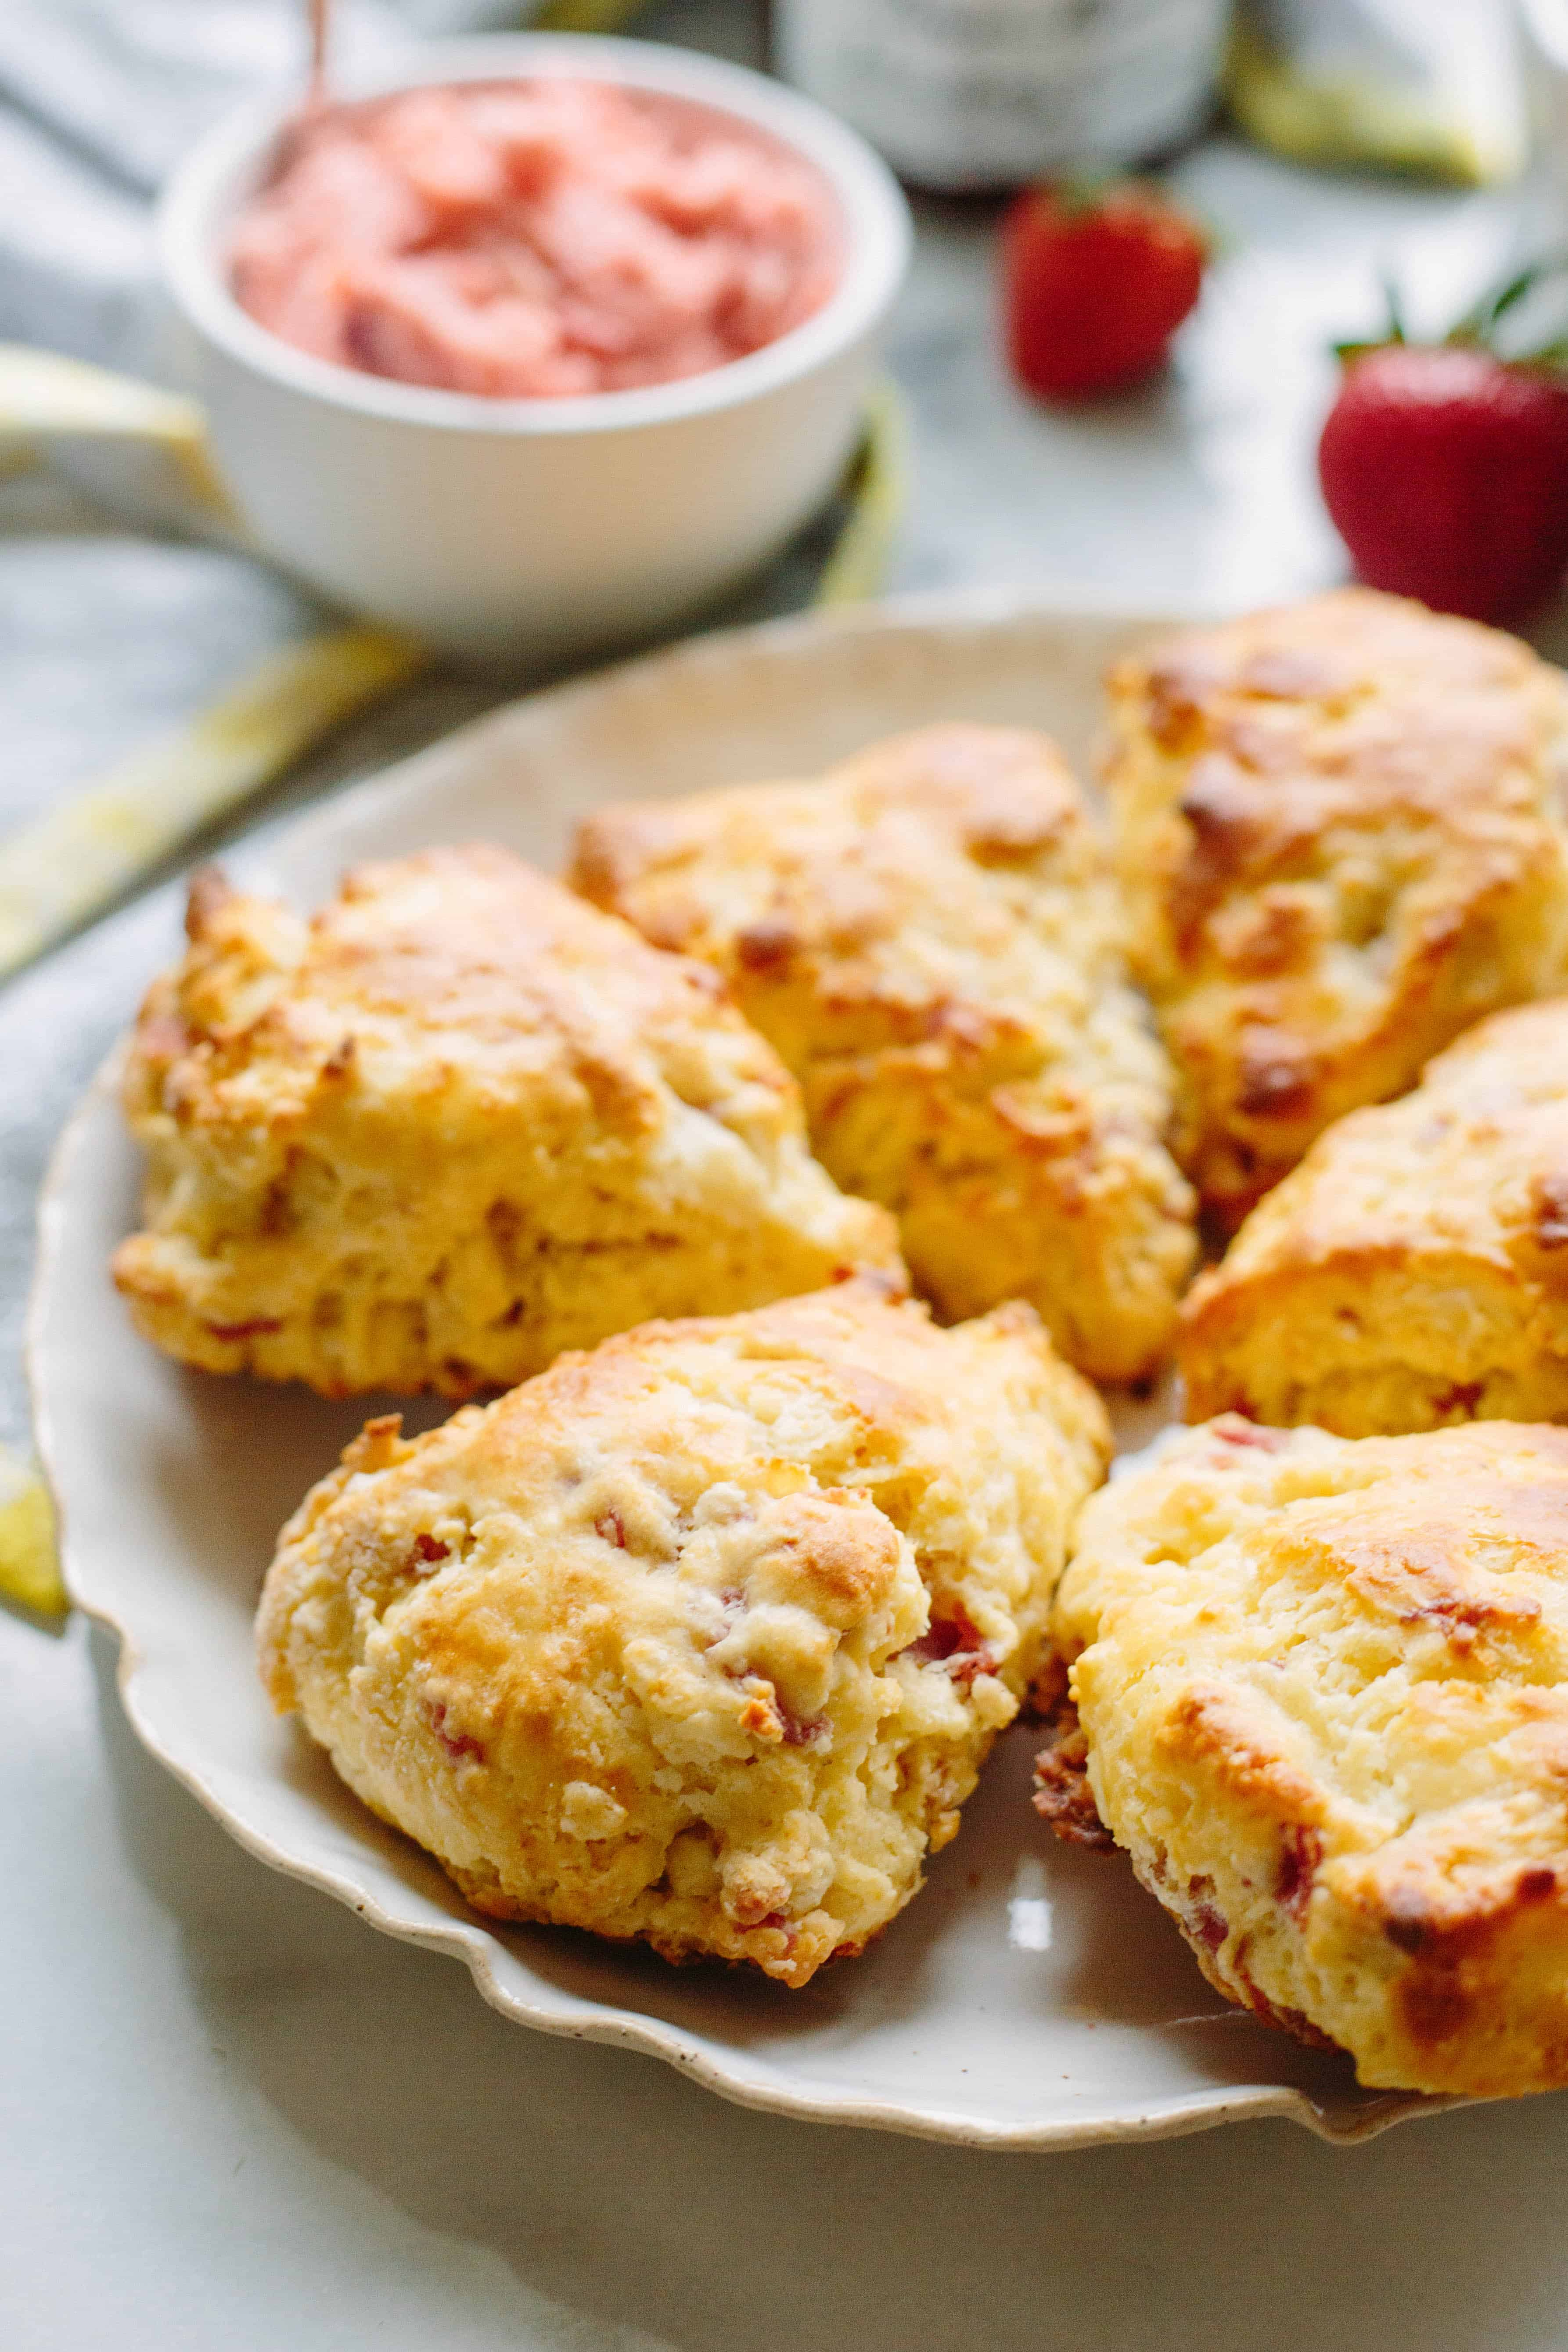 Prosciutto goat cheese scones arranged in a full circle on a white plate.